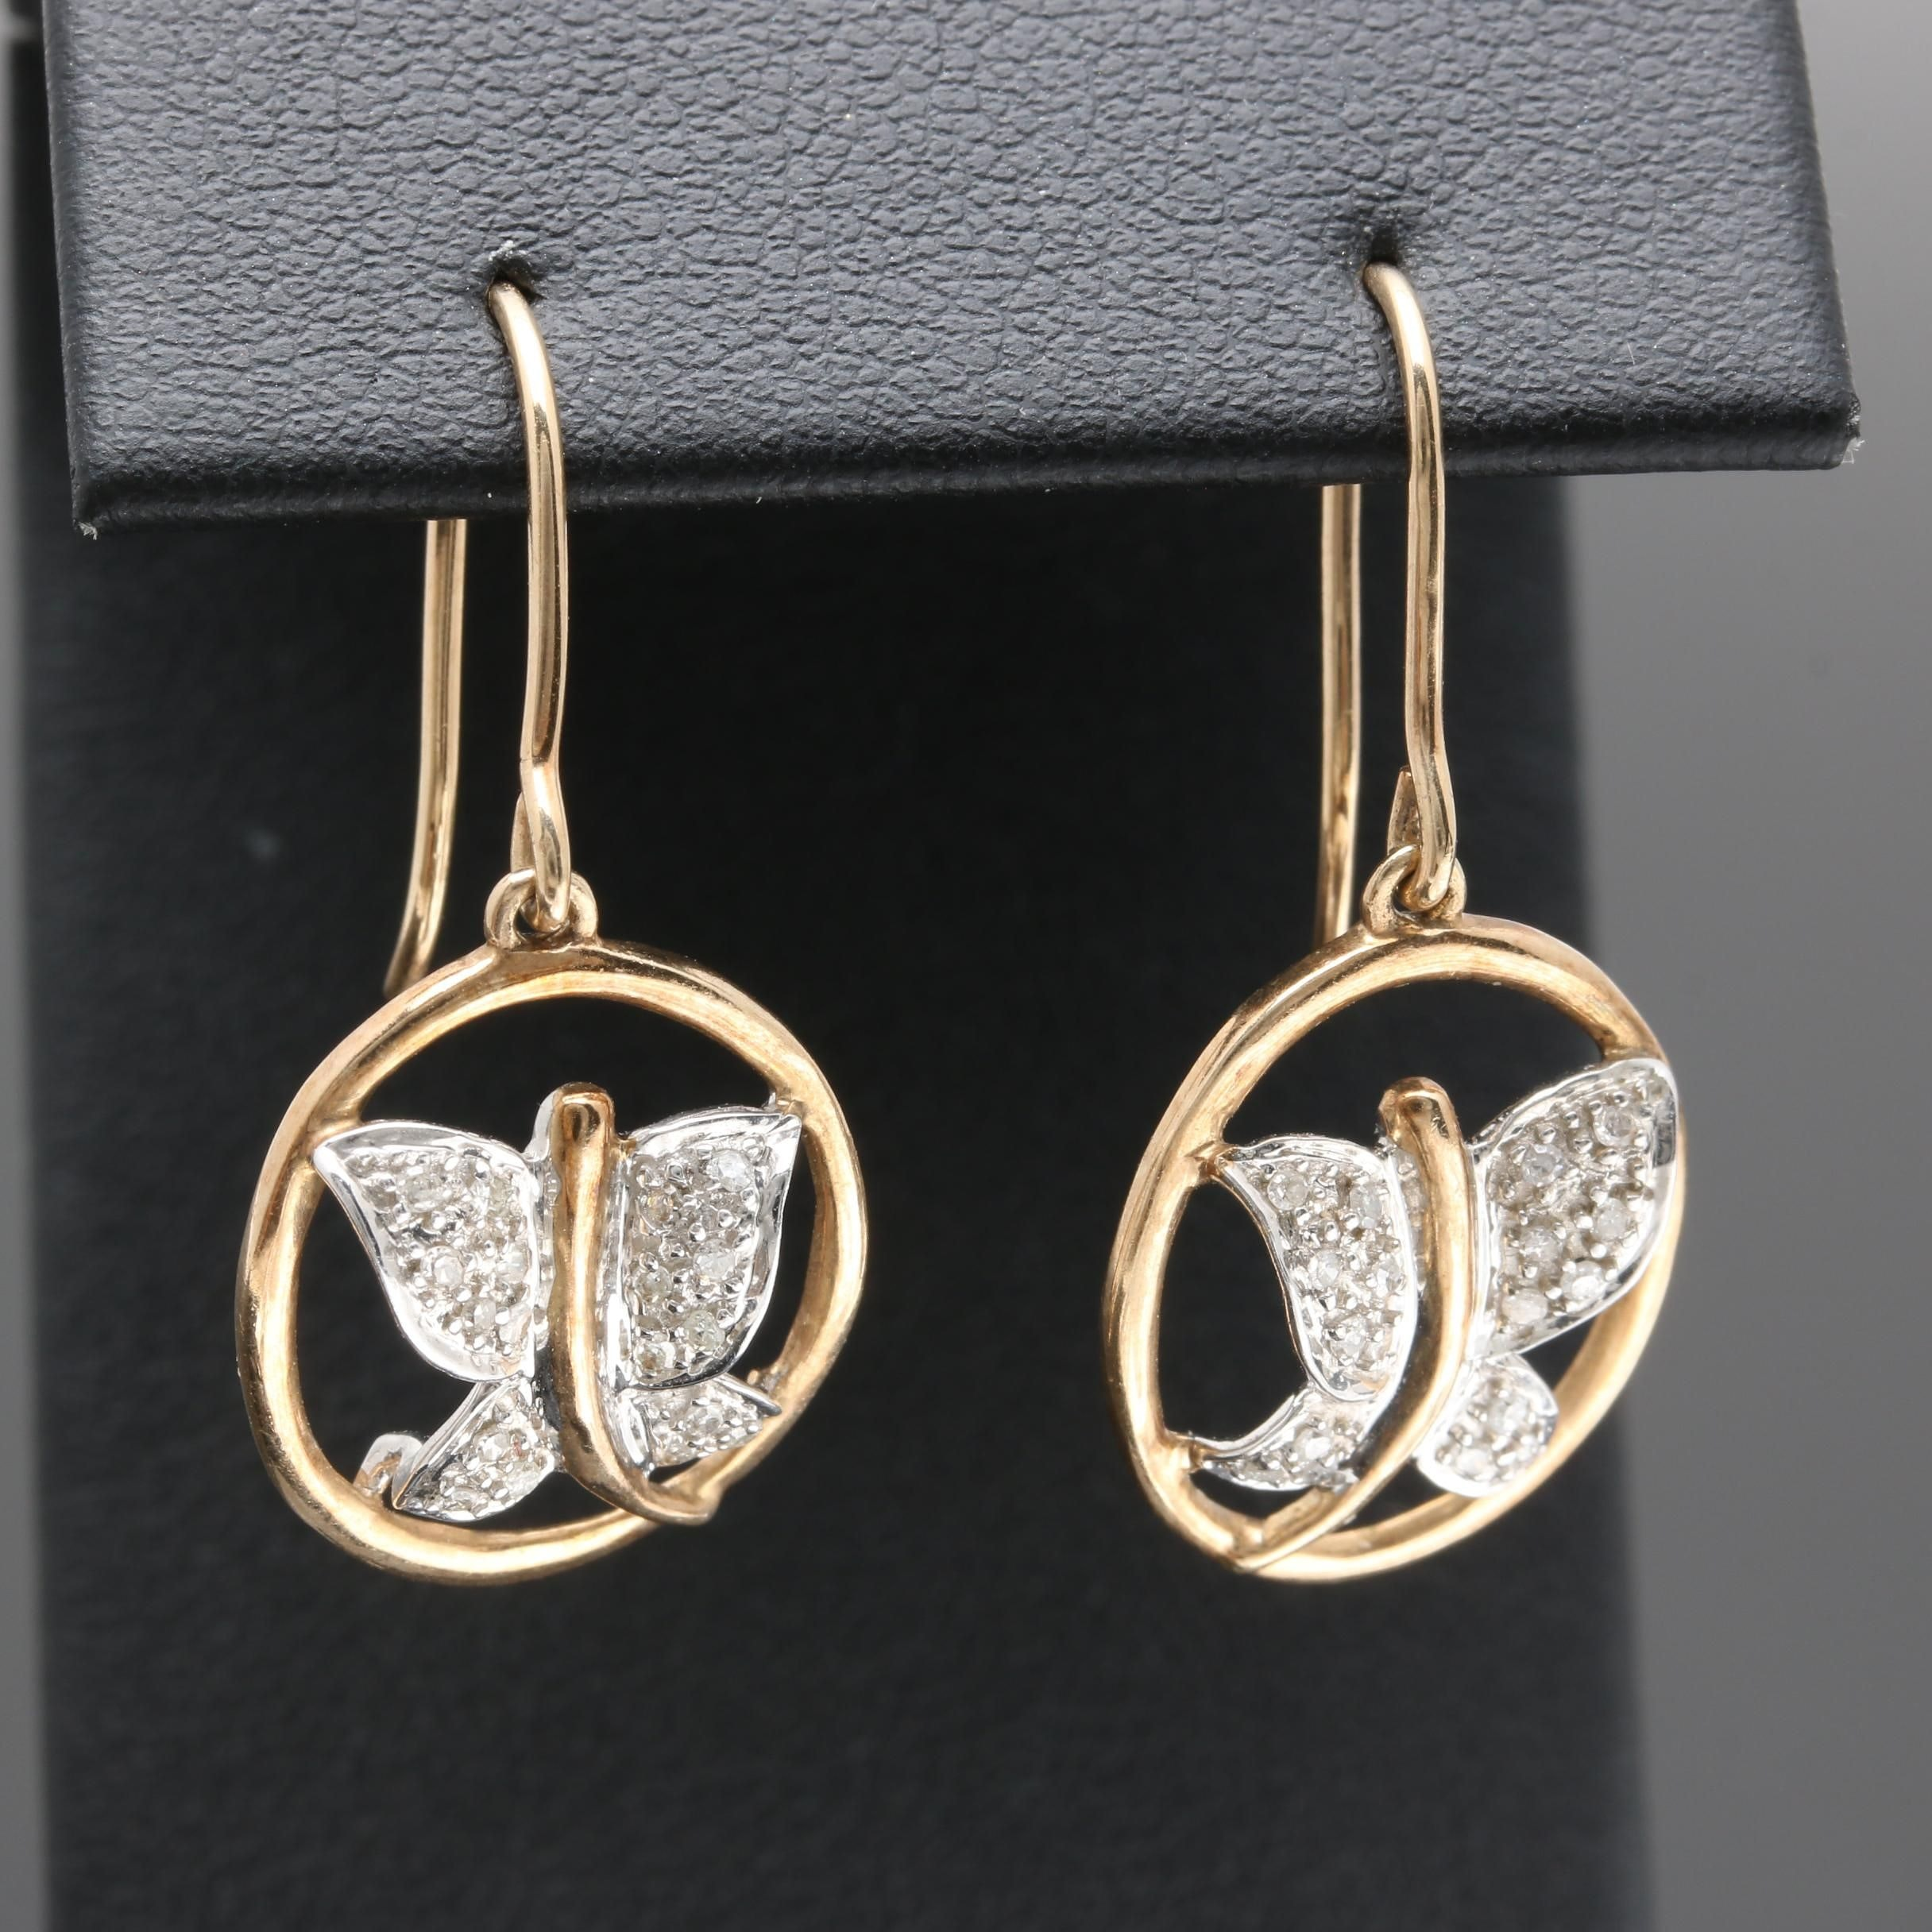 10K Yellow Gold Diamond Butterfly Earrings with White Gold Accents